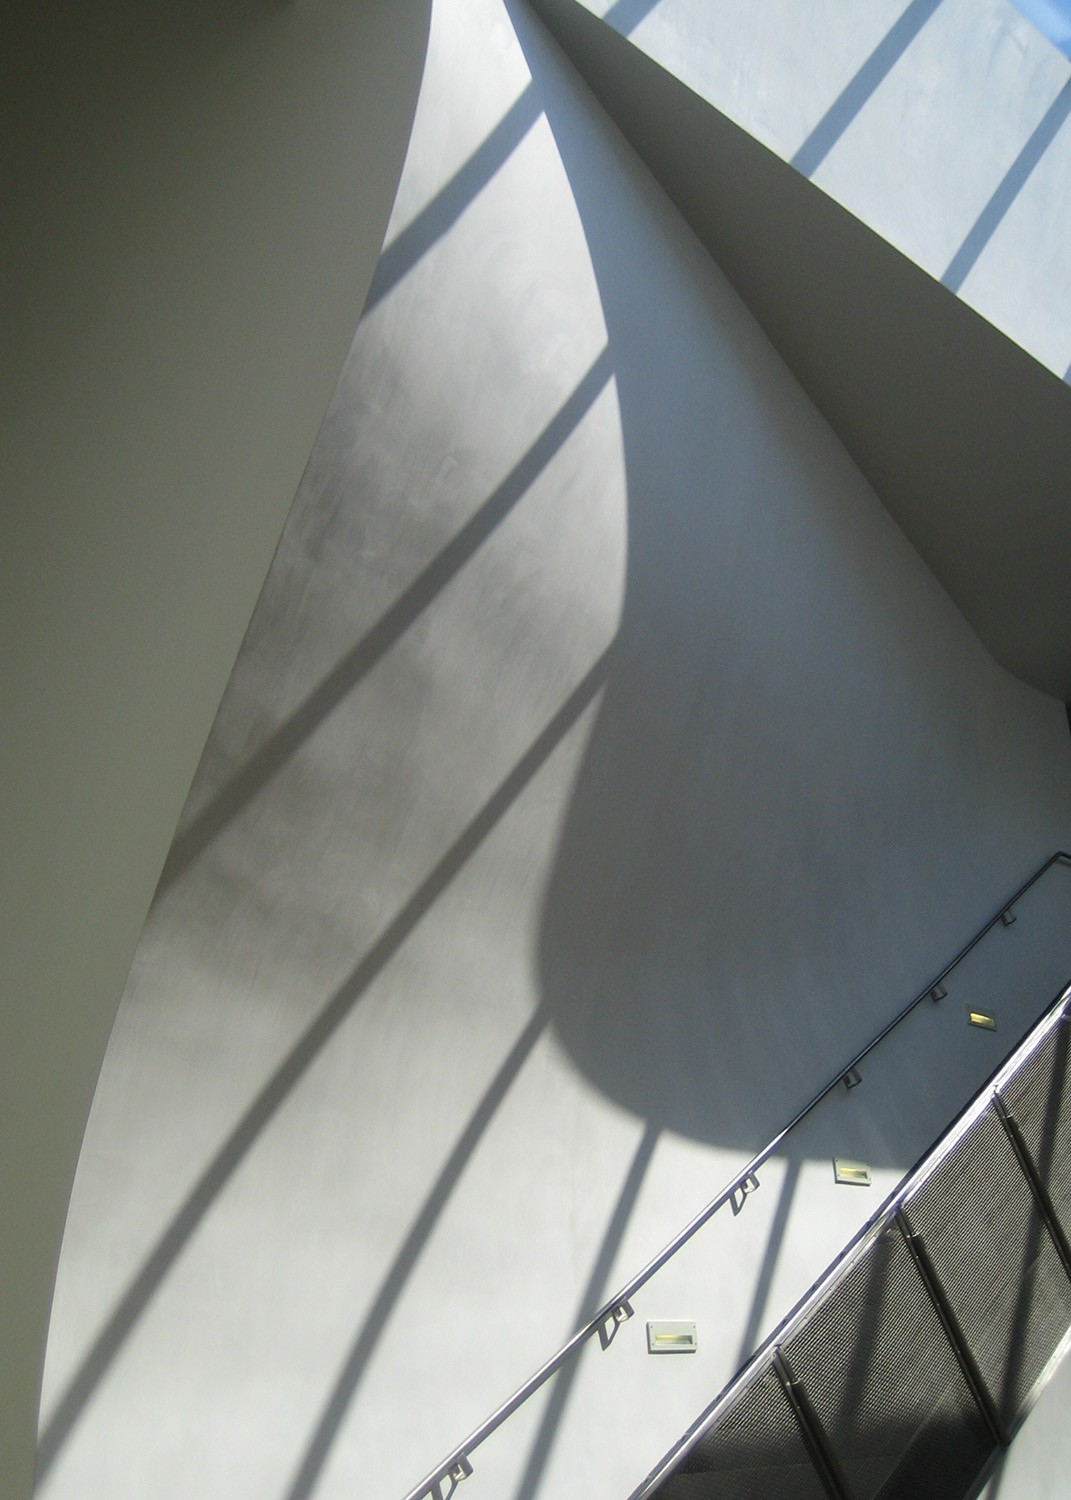 https://stevenholl.sfo2.digitaloceanspaces.com/uploads/projects/project-images/StevenHollArchitects_InteriorStairDetail_WV.jpg